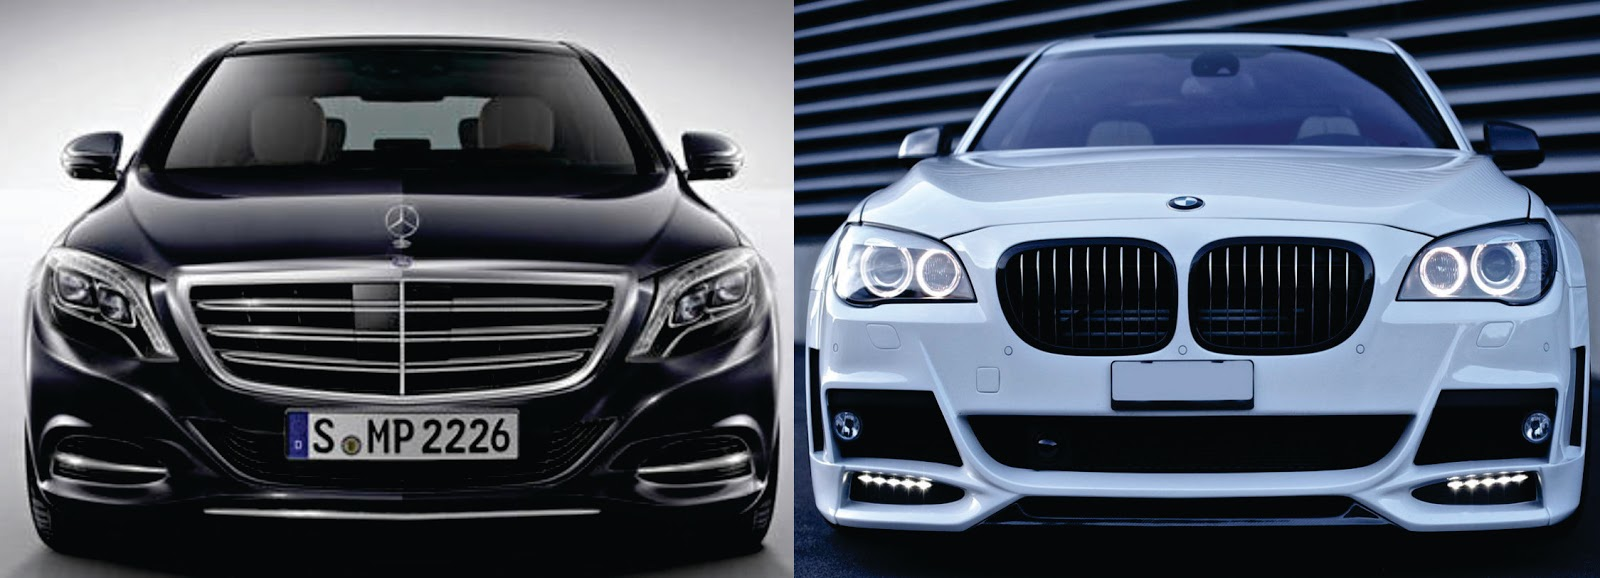 Attractive Mercedes Benz S600 And BMW 760Li